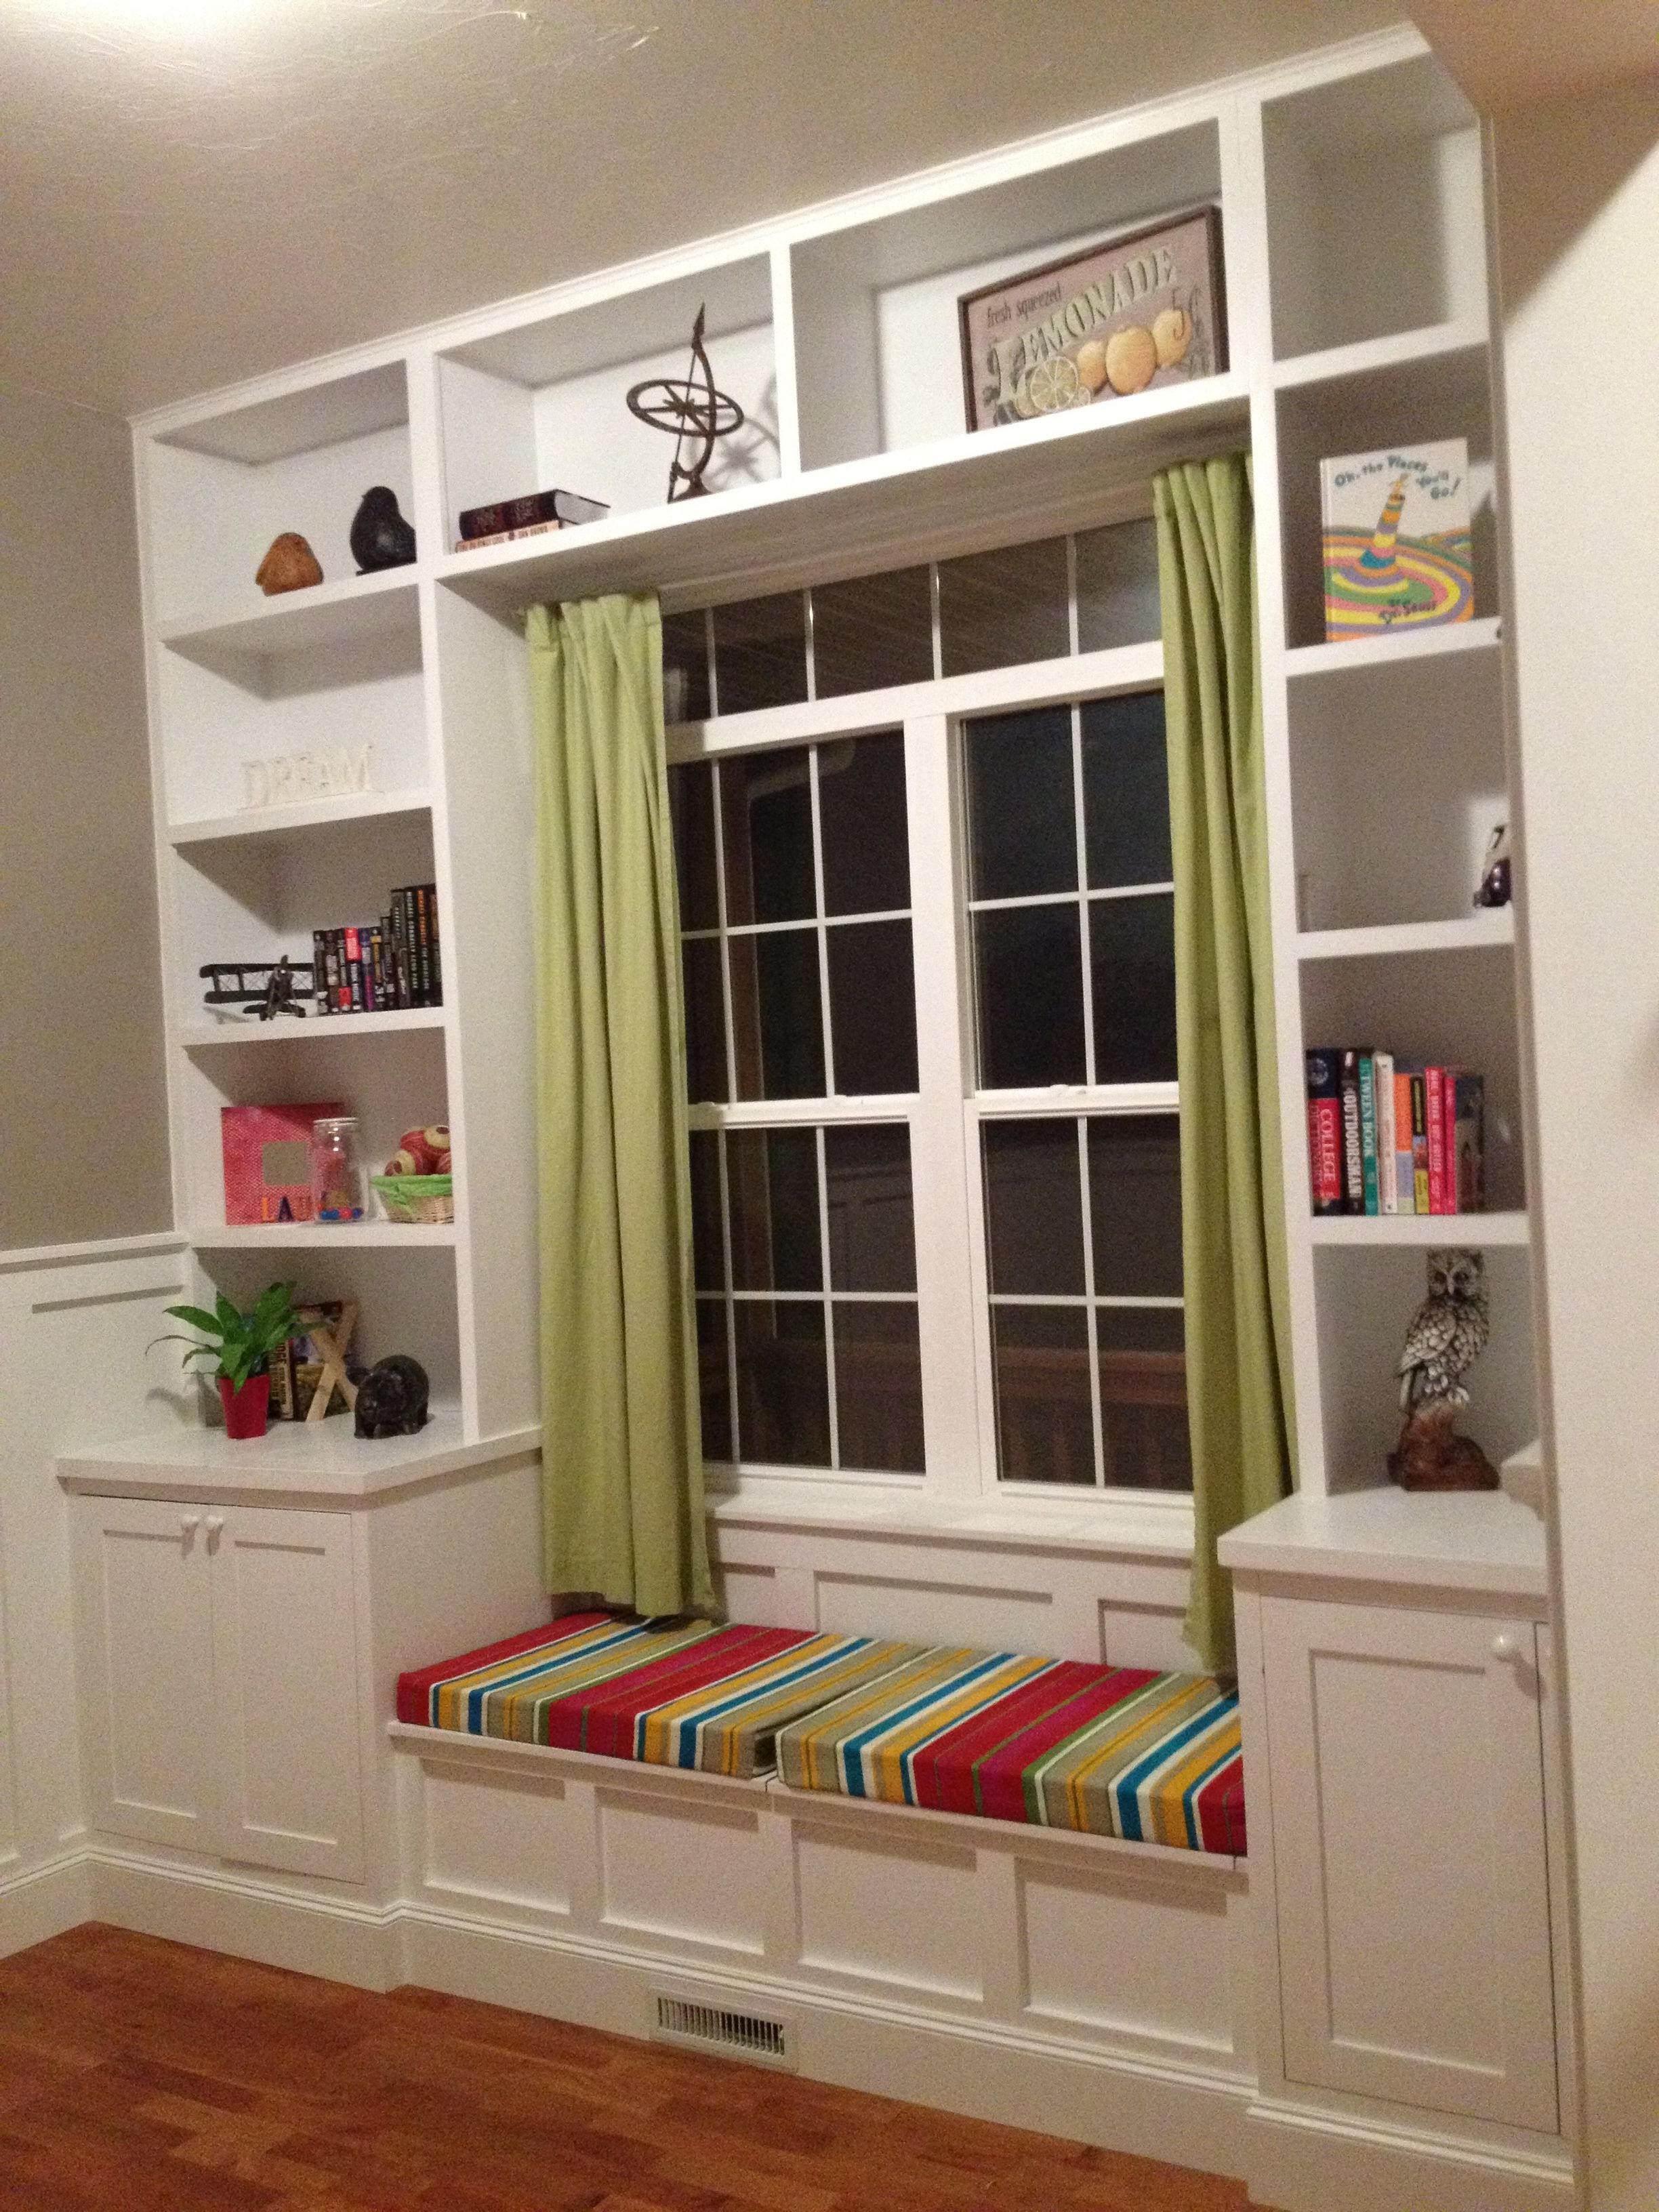 Built In Bookshelves Around The Window With A Seat For Daydreaming I Had These Custom Built At